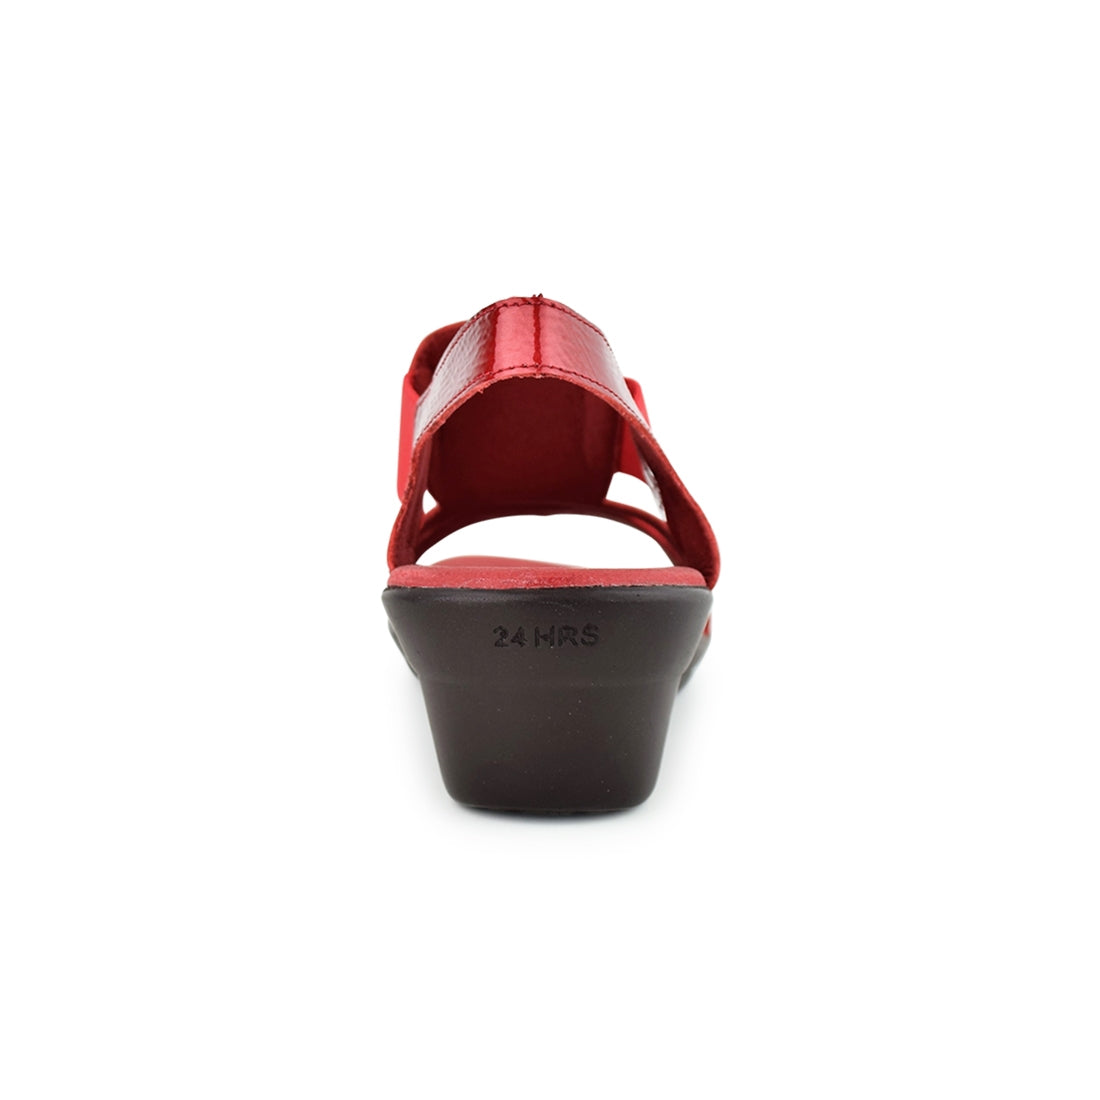 PALAK - 24Hours Wedge Sandal Red Patent